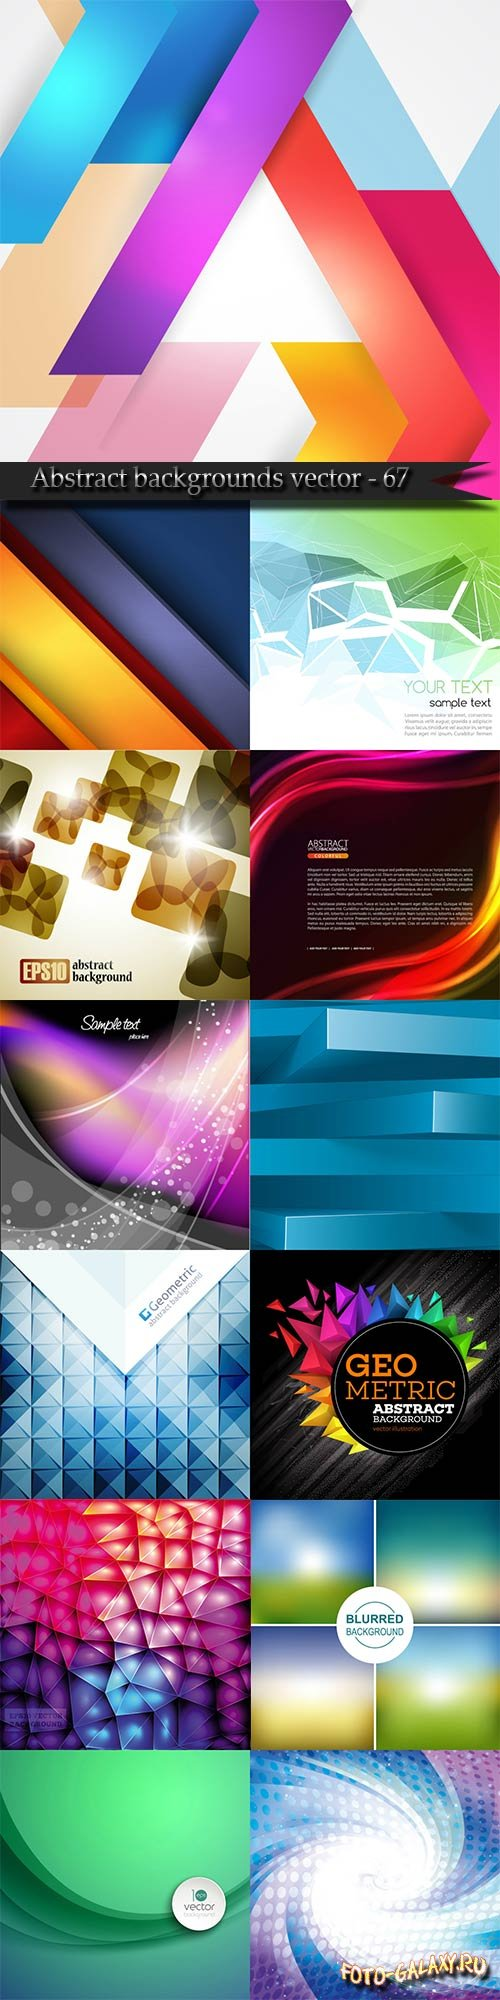 Bright colorful abstract backgrounds vector - 67